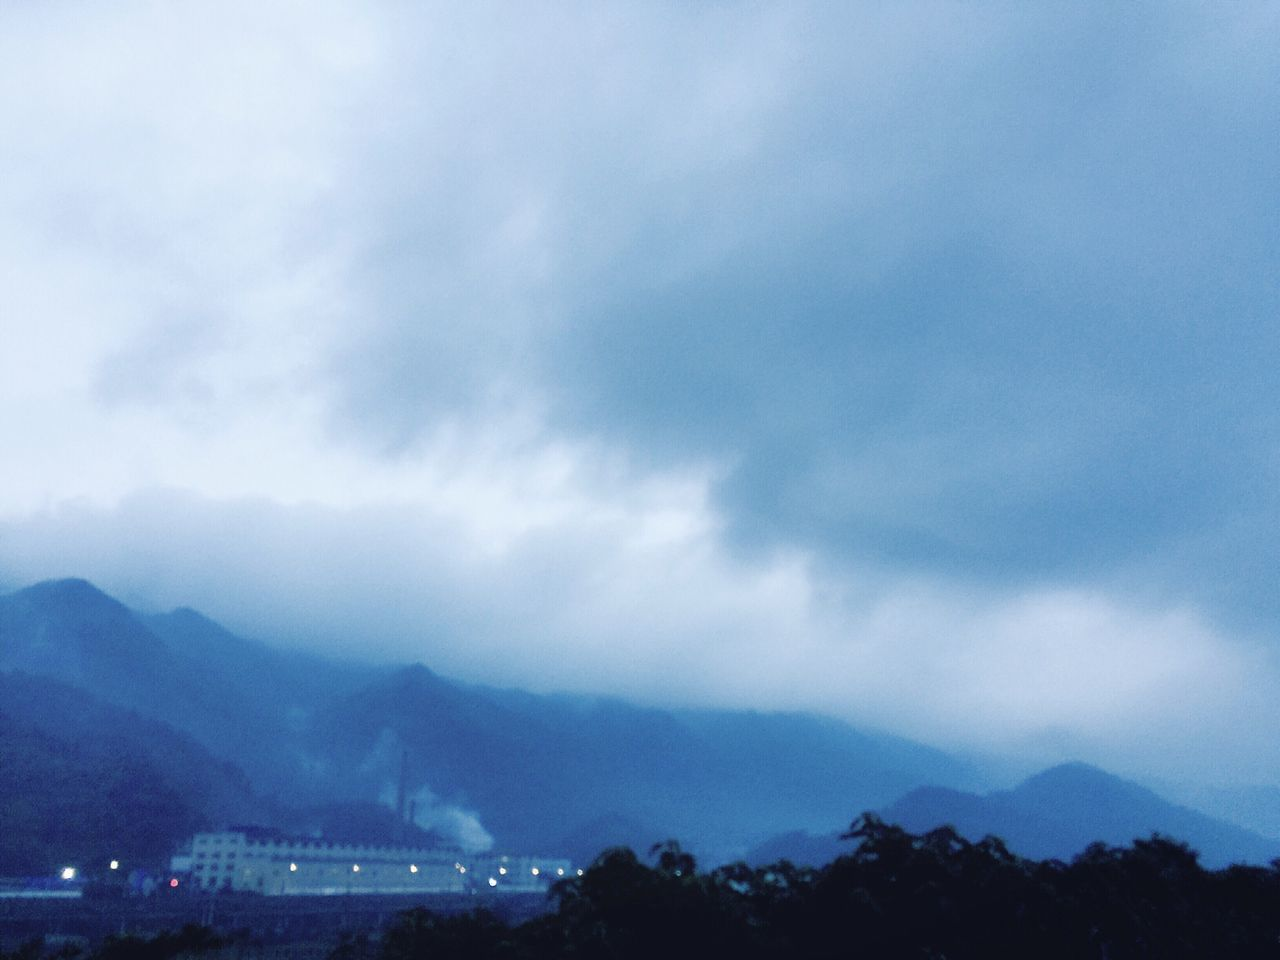 mountain, sky, cloud - sky, beauty in nature, architecture, weather, building exterior, mountain range, no people, nature, scenics, outdoors, silhouette, cityscape, built structure, city, day, range